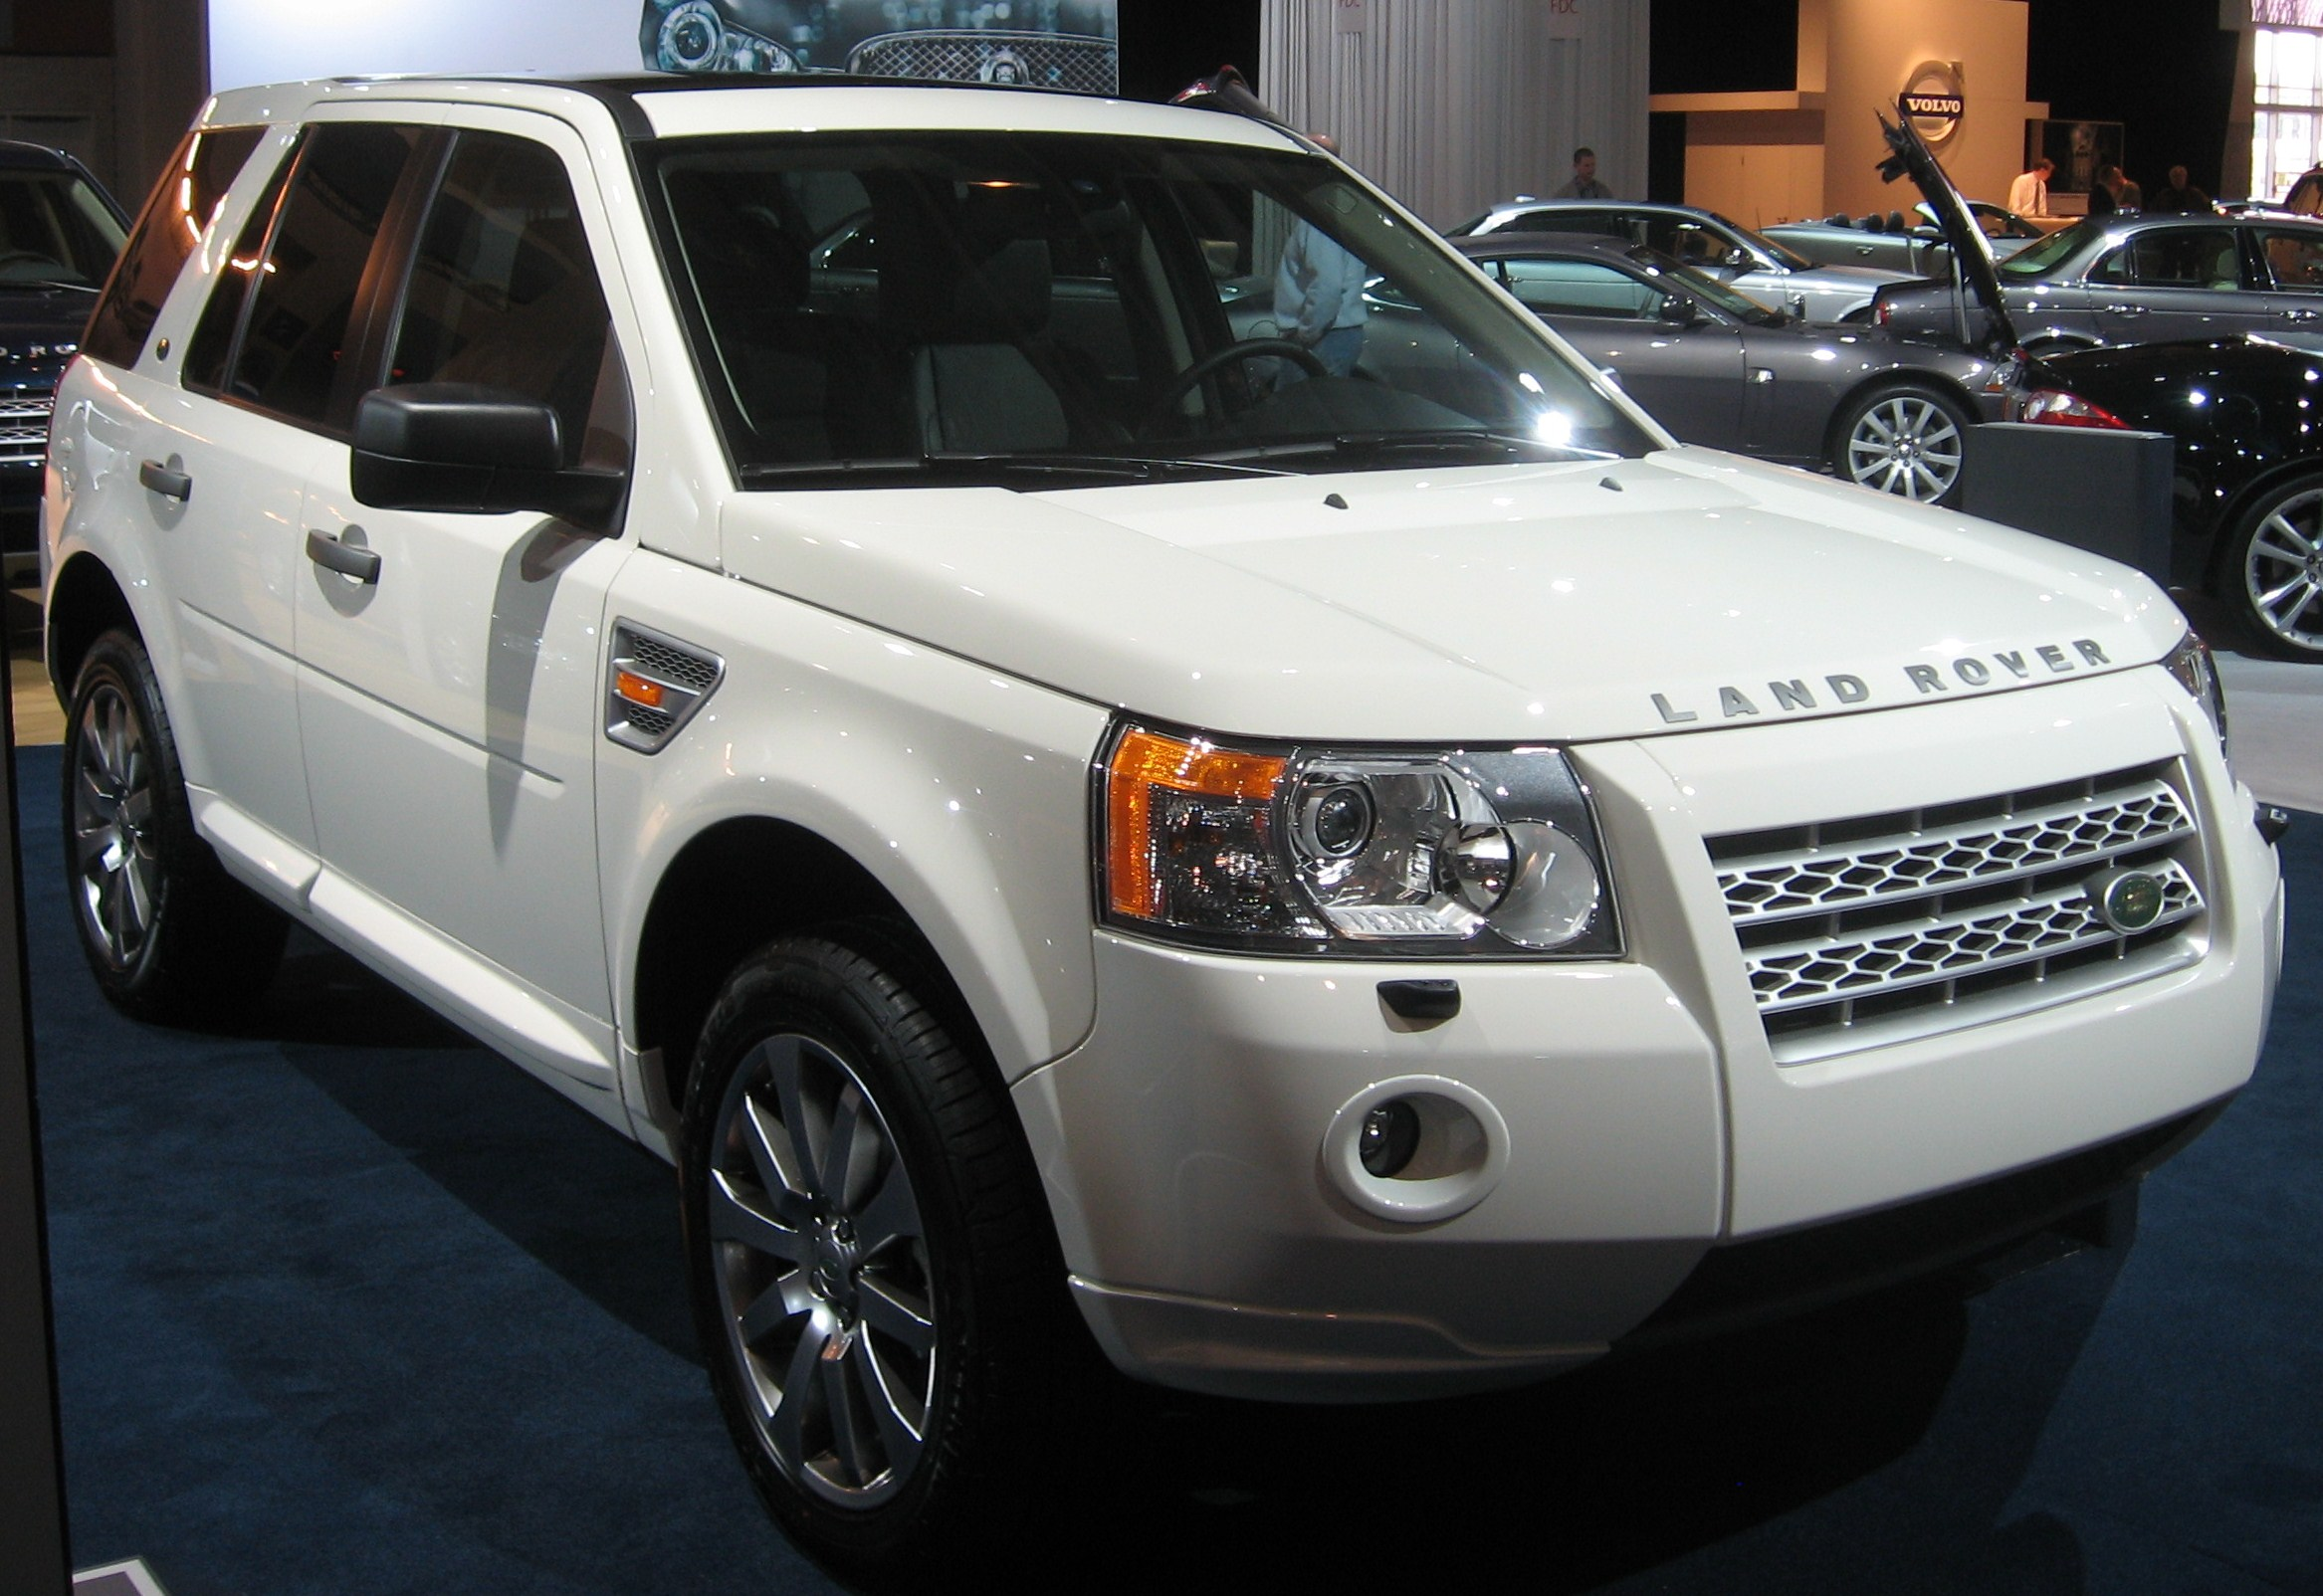 File:2008 Land Rover LR2 DC.JPG - Wikimedia Commons